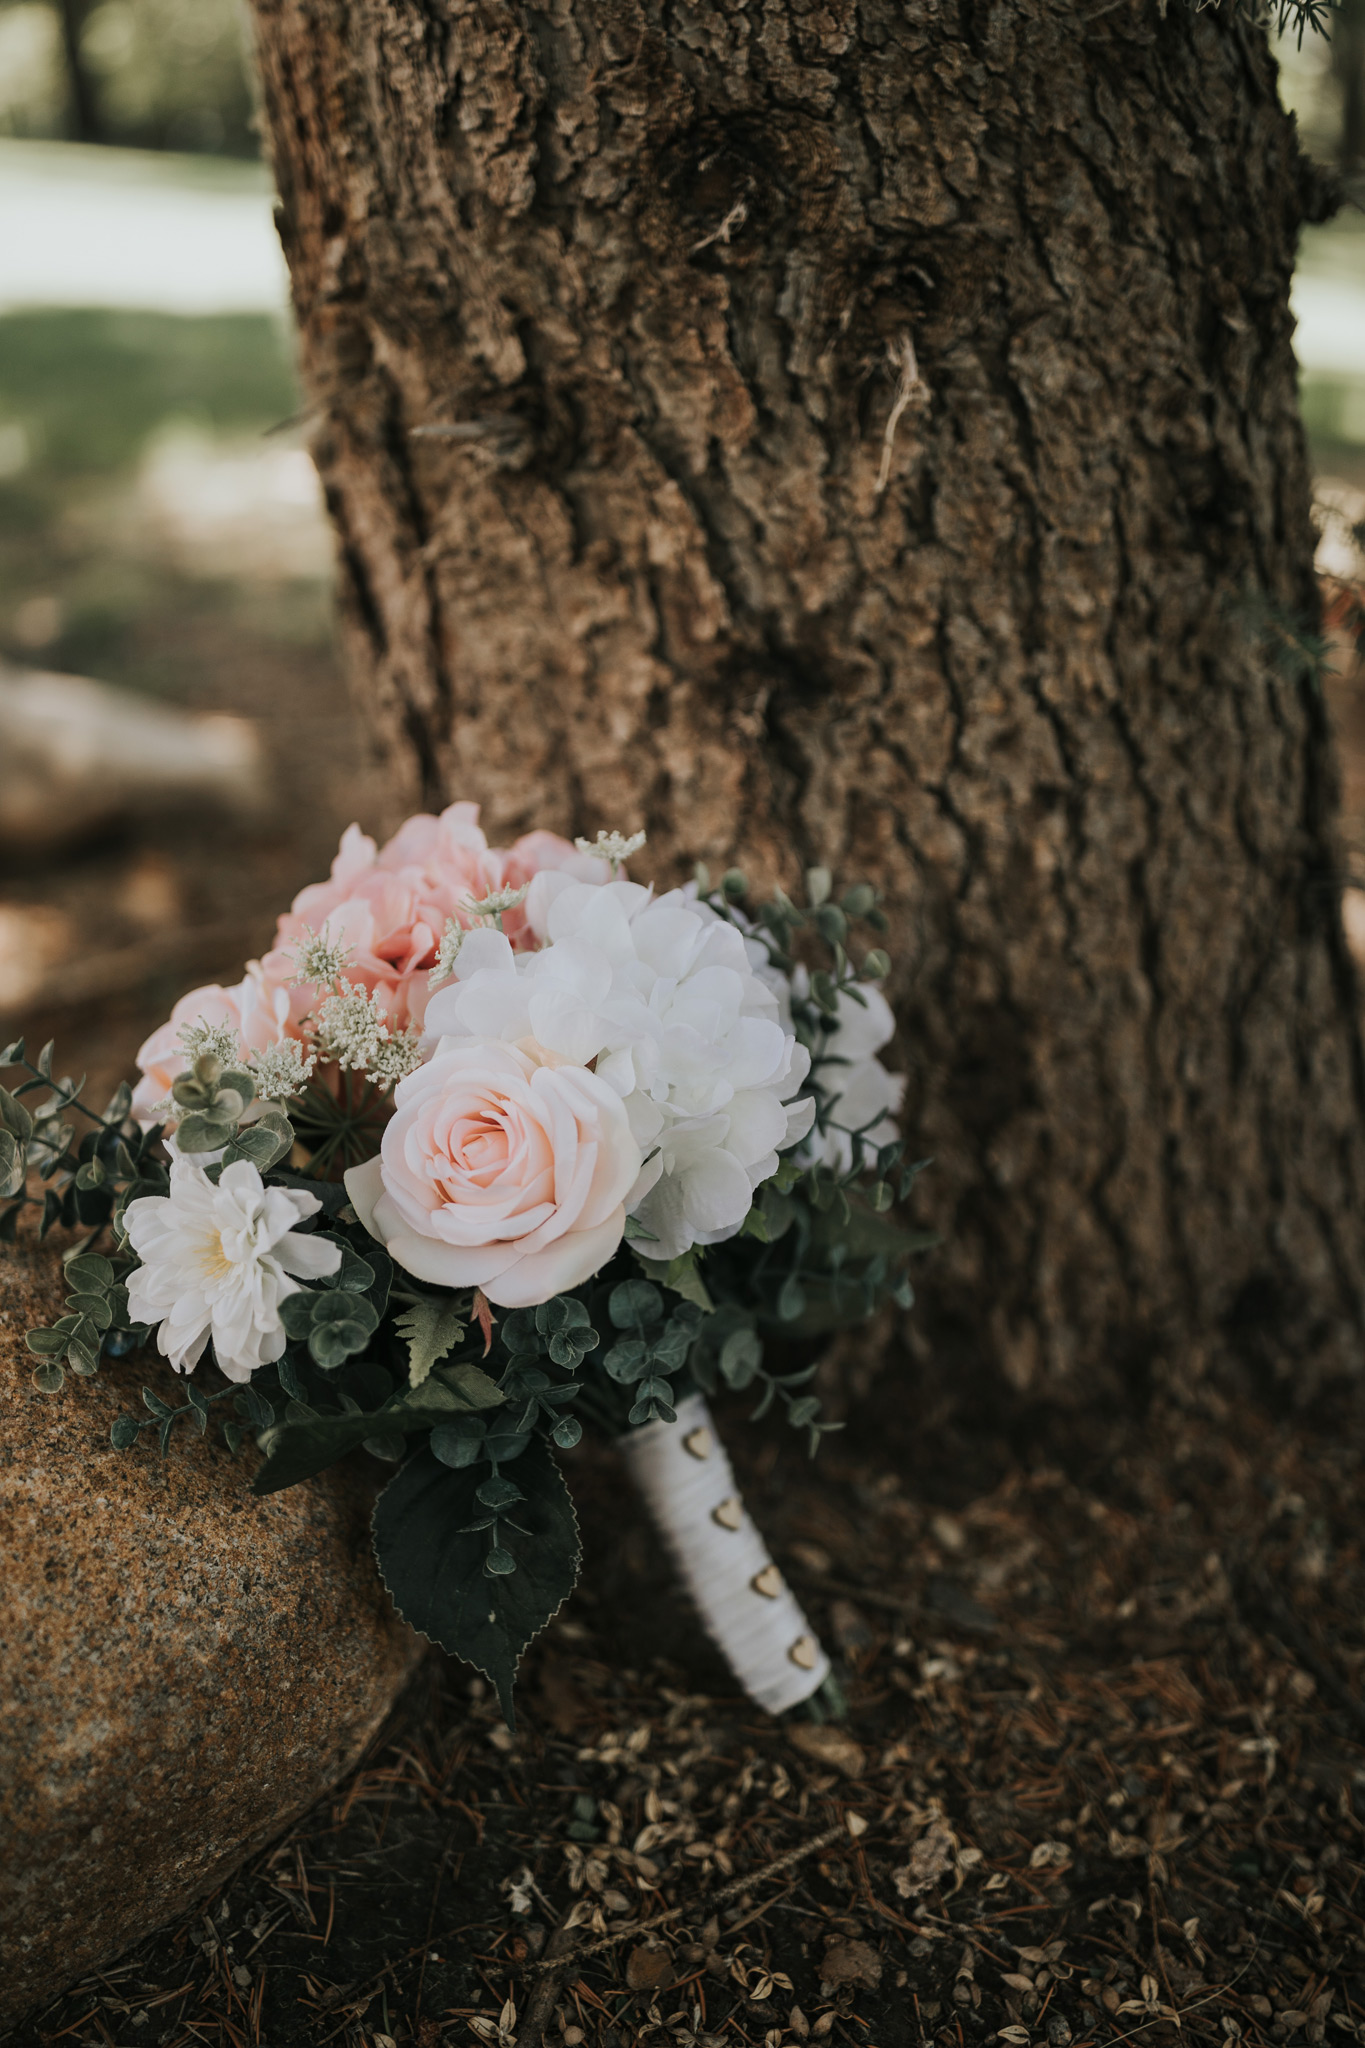 brides bouquet leaned against a tree detail photo